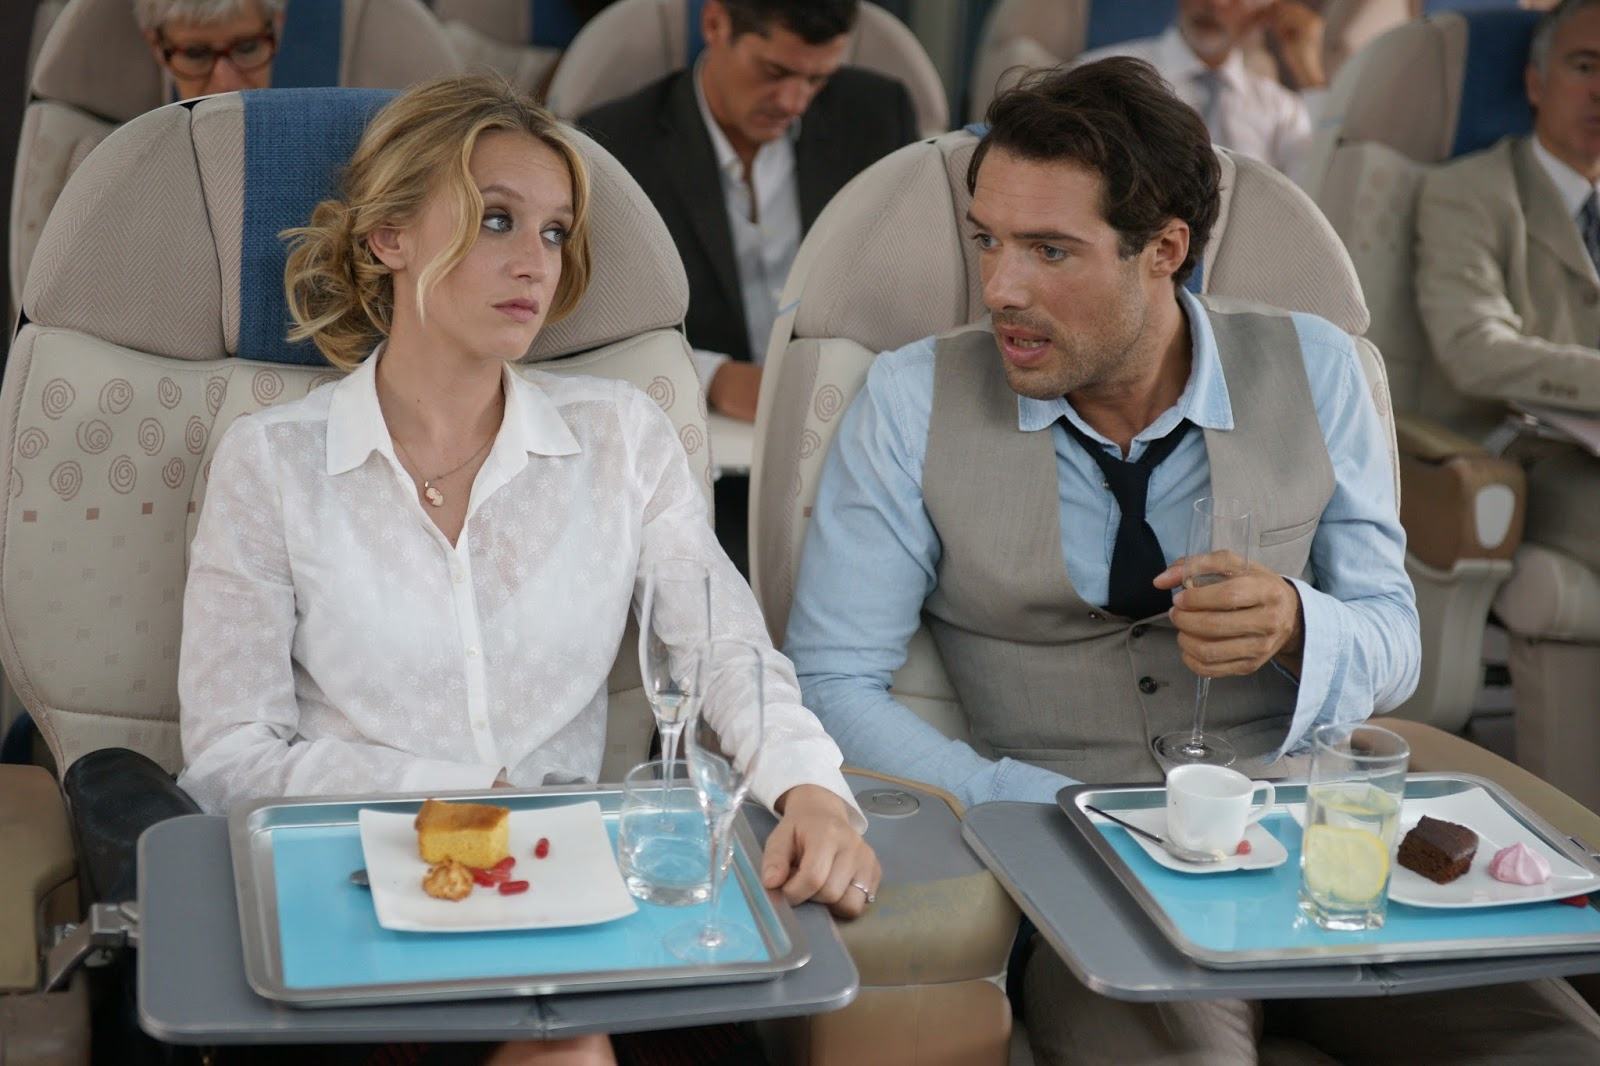 up in the air the descendants film George clooney as ryan bingham in a dramatic male monologue from the film up in the air, 2009 monologuedb the monologue database  up in the air, ryan bingham .